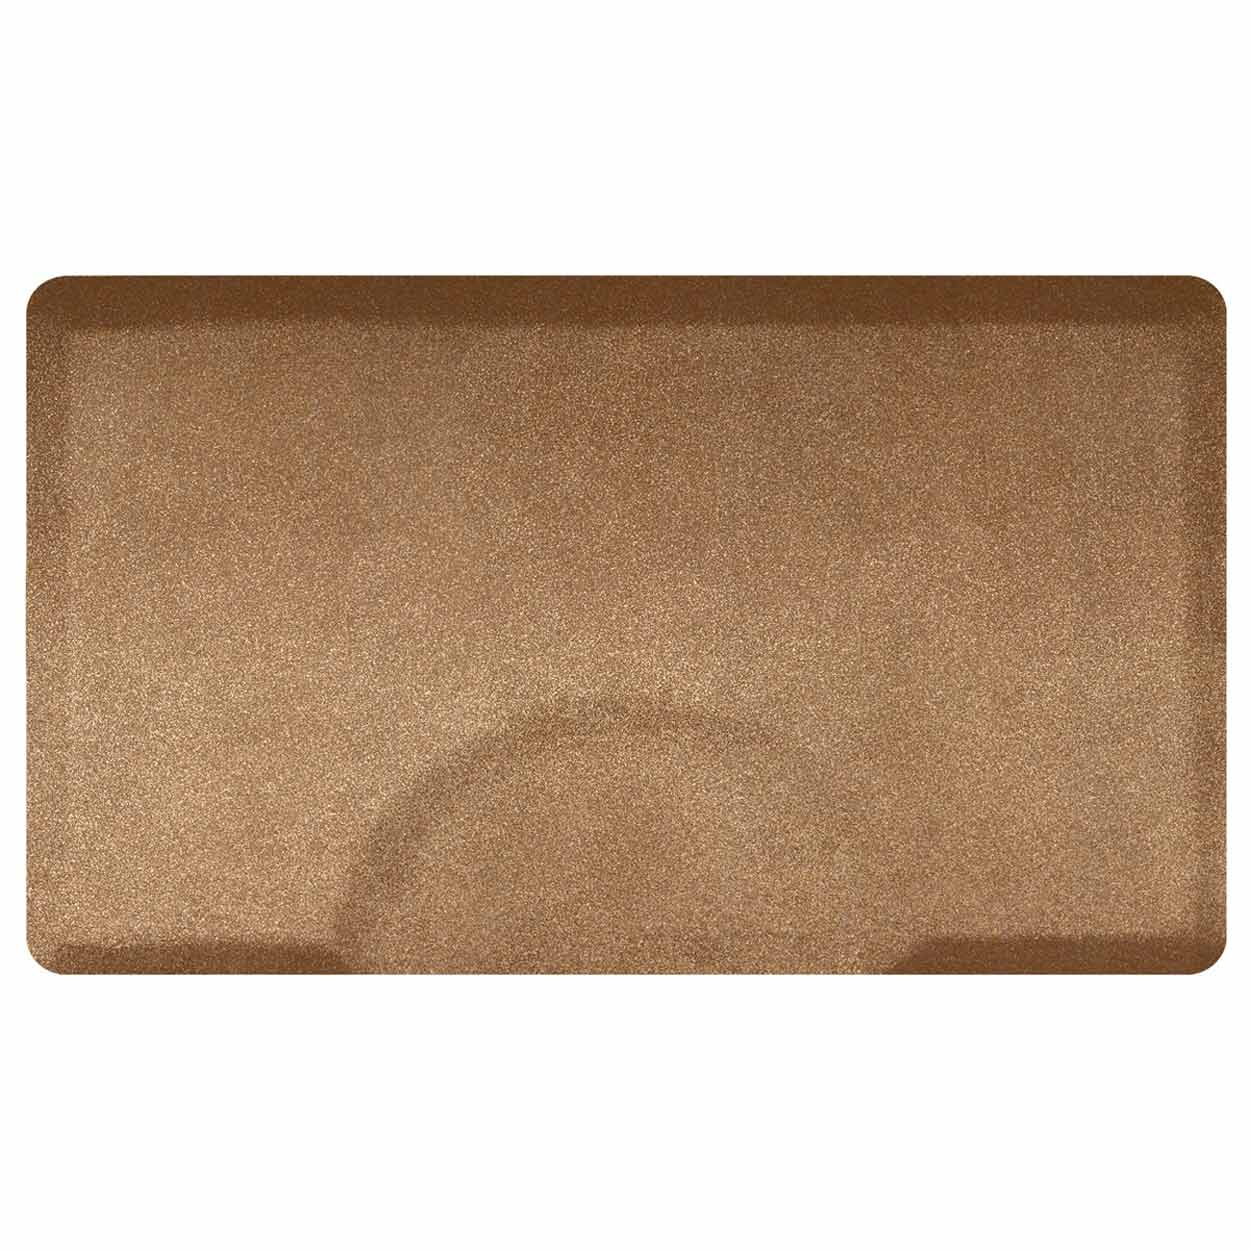 Granite Rectangle Anti-Fatigue Salon Mat in Two Sizes alternative product image 2